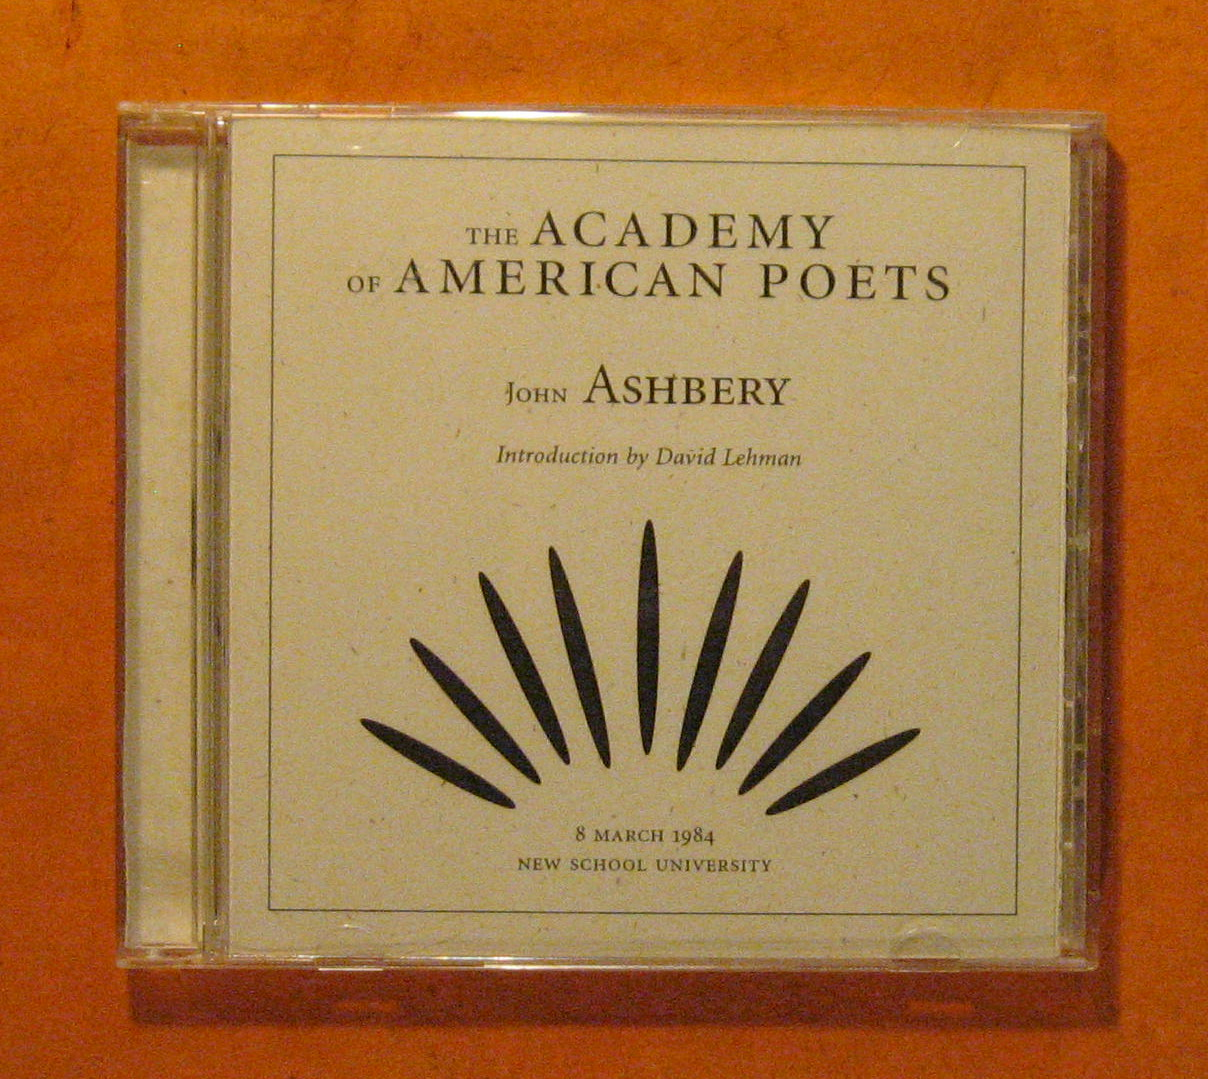 Image for John Ashbery [The Academy of American Poets Audio CD]